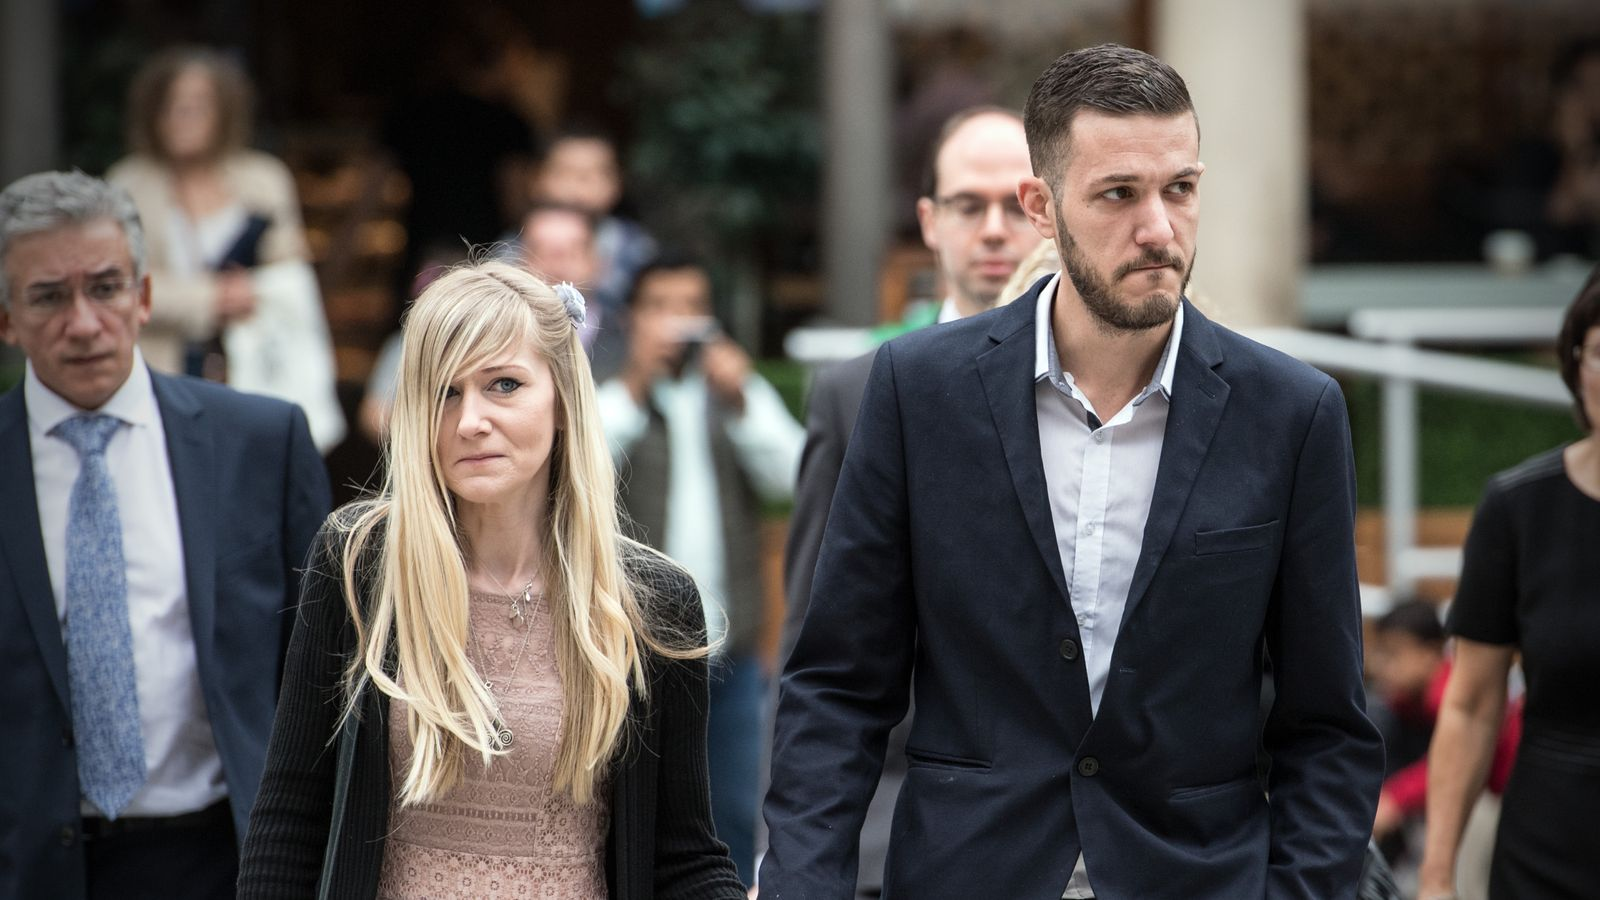 Charlie Gard's parents prepare to say goodbye to their 'absolute warrior' son